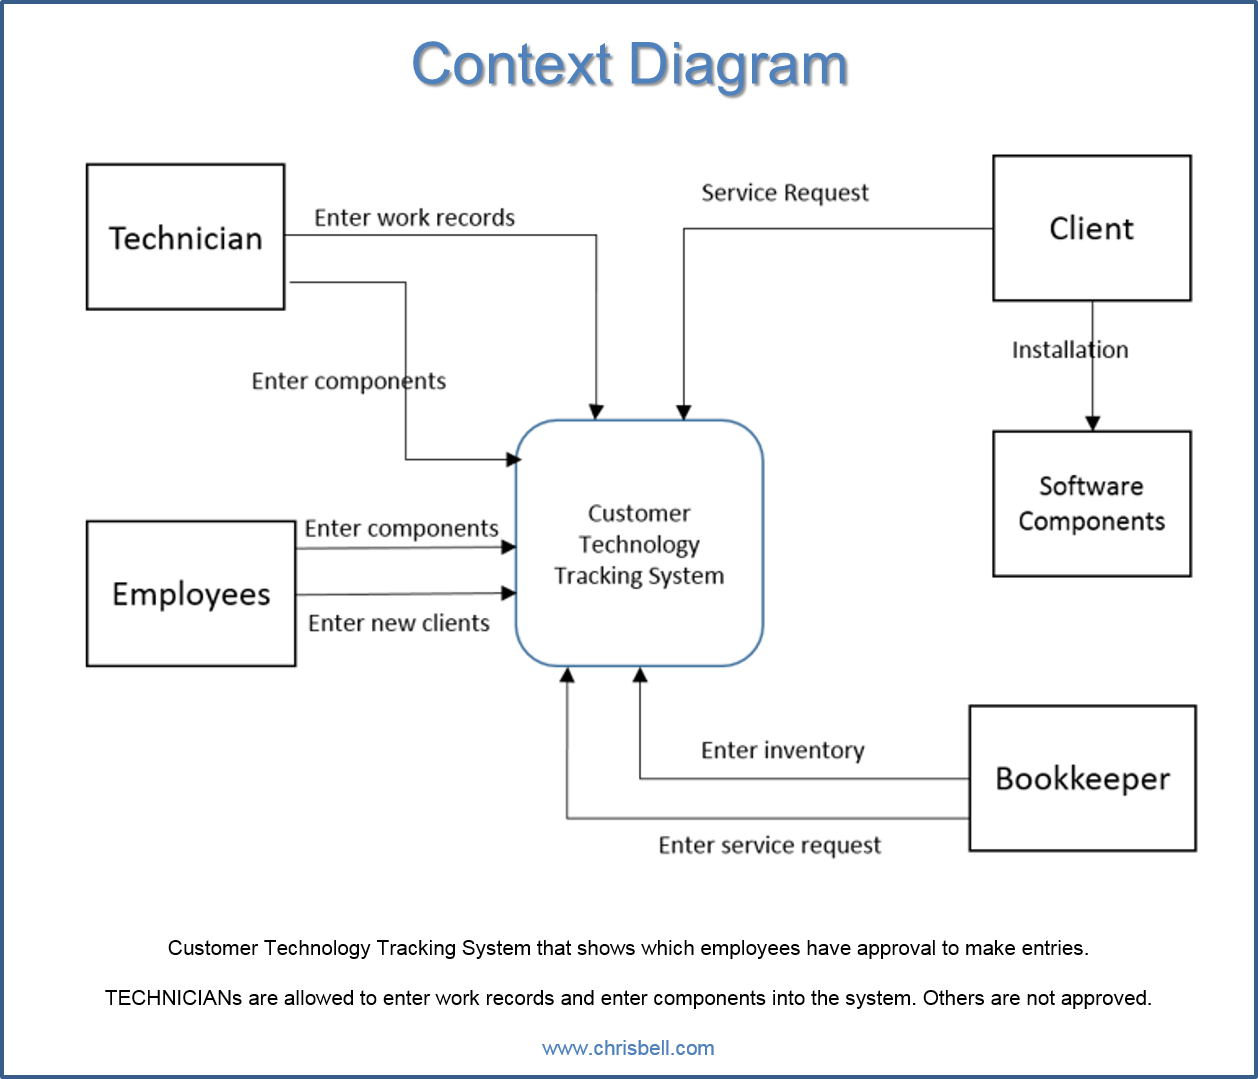 RDBMS context diagram event, system, decomposition, context and primitive diagrams chris